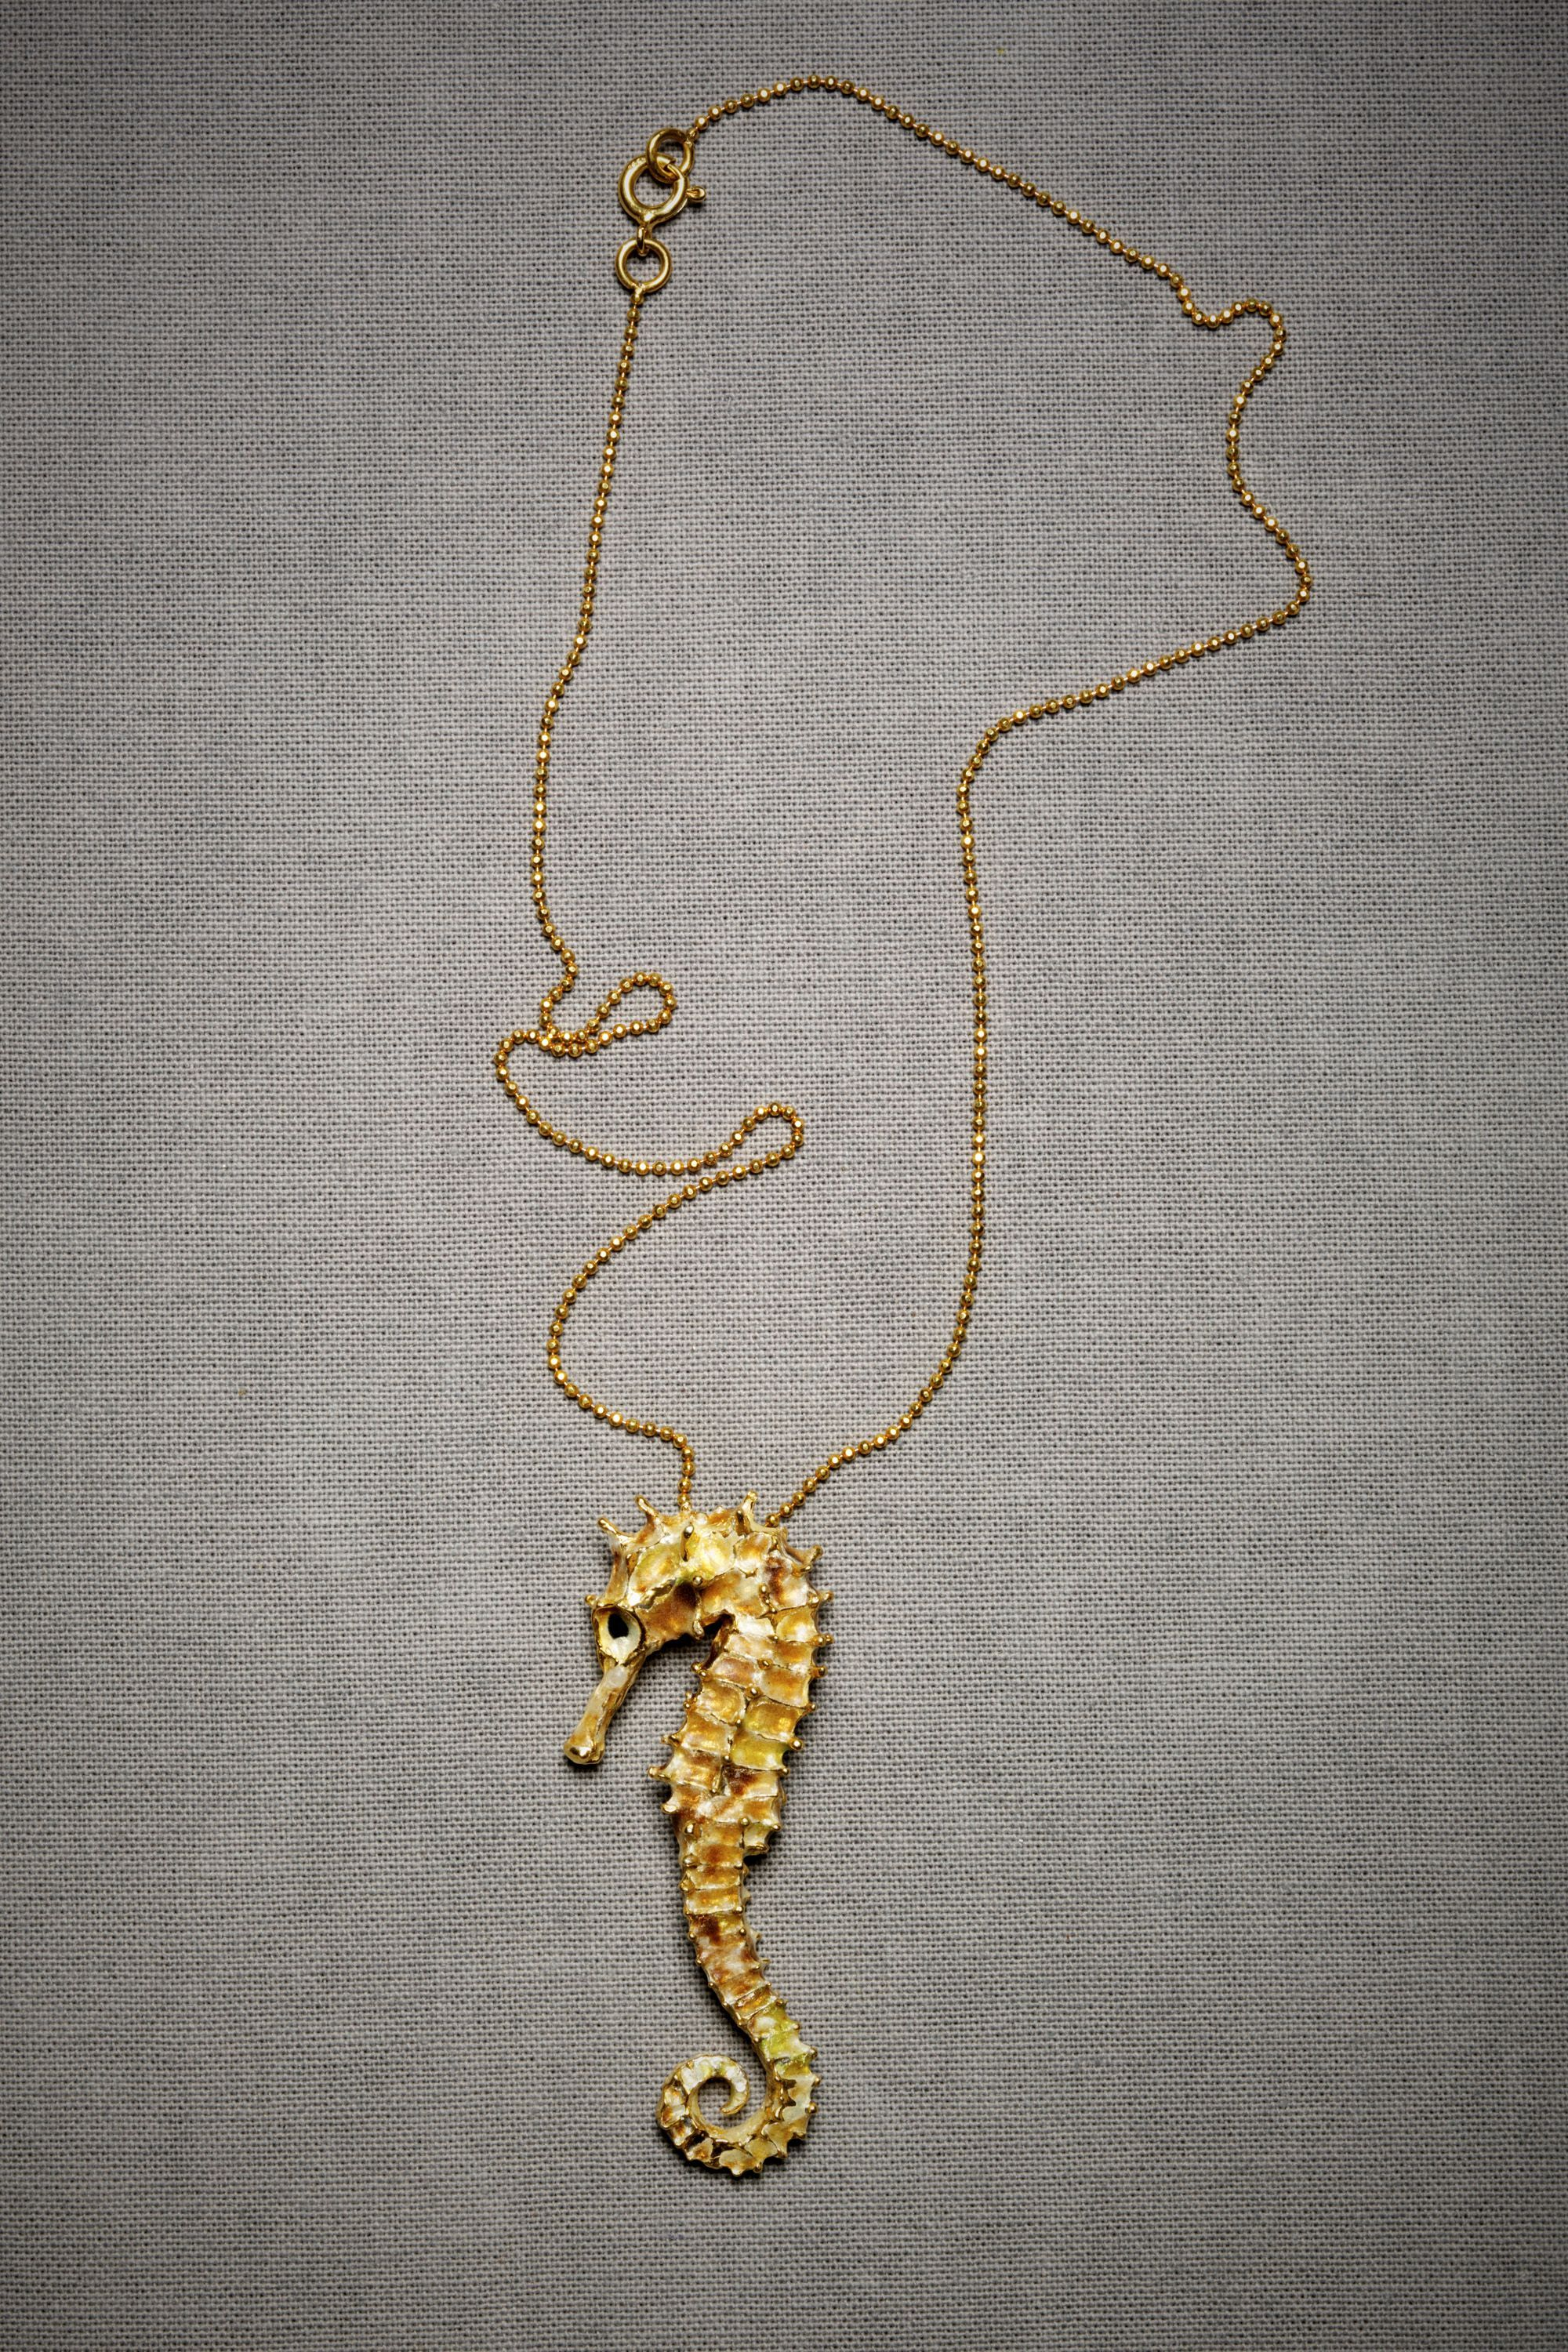 SOMEONE SHOU;D TELL RYAN TO BUY ME THIS FOR OUR 16TH ANNI OF MEETING EACH OTHER! WE MET AT THE SEAHORSE COTTAGES! seahorse